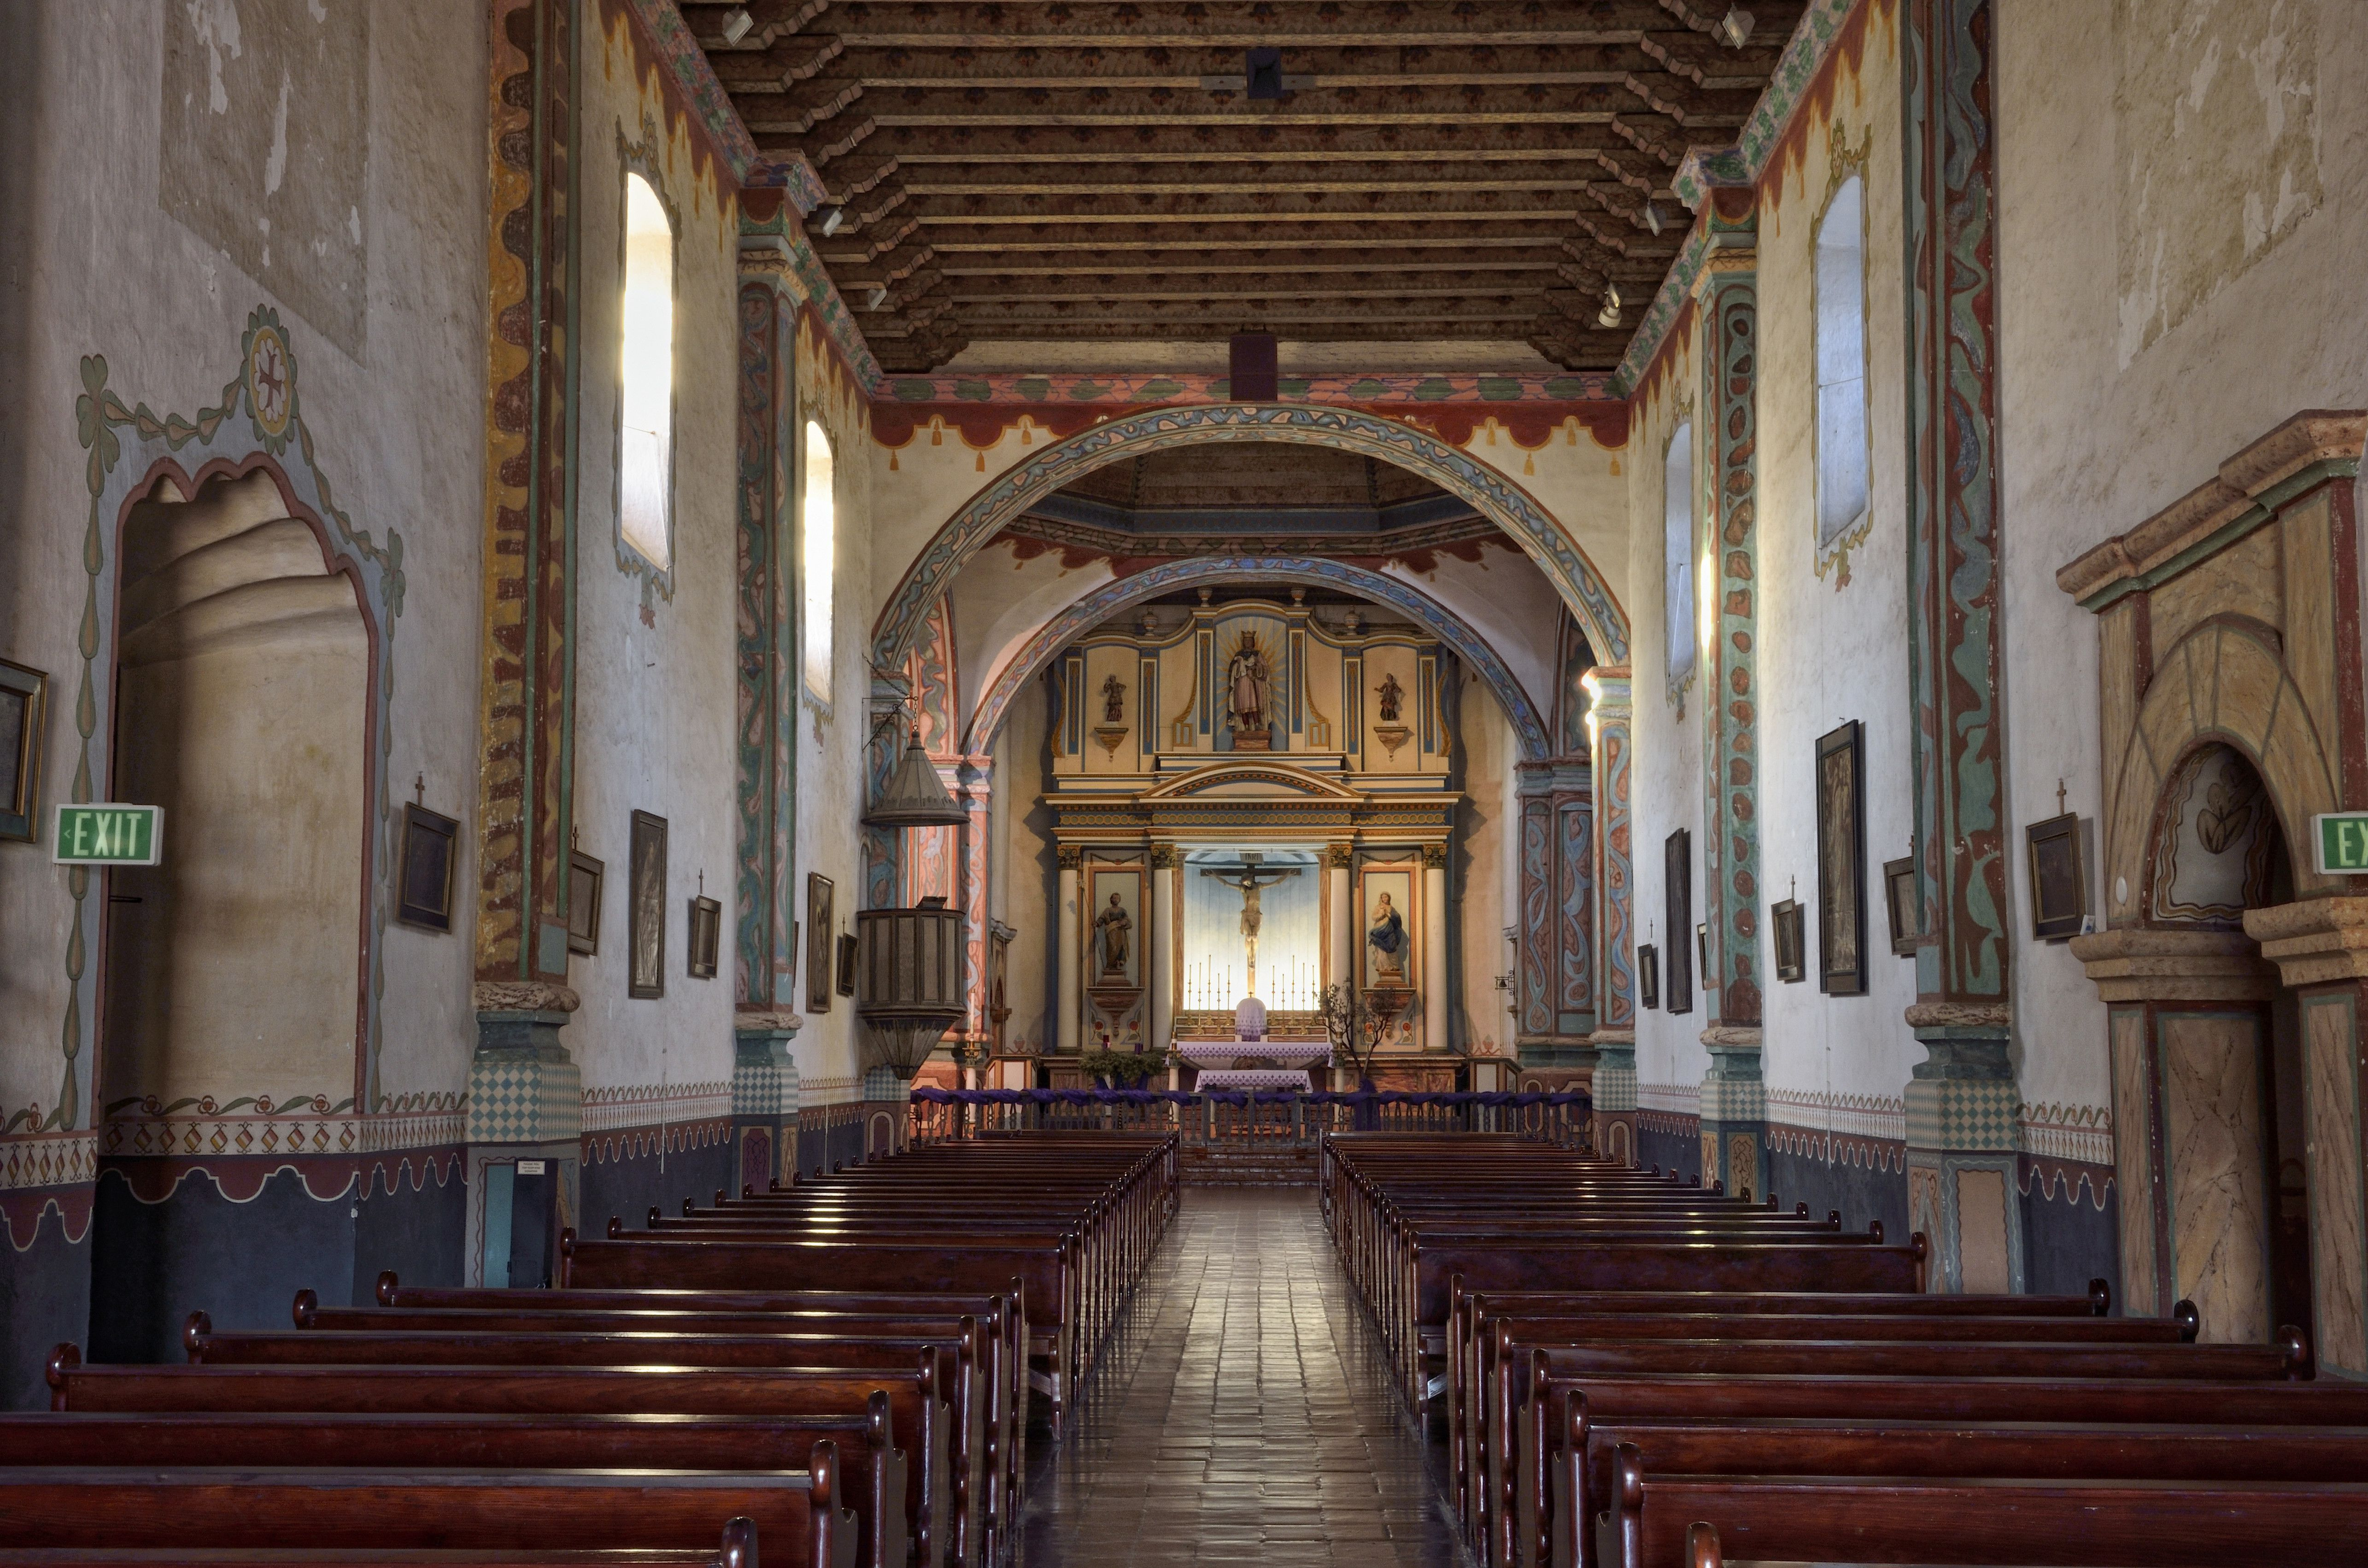 Nave with the main altar, Mission San Luis Rey de Francia, Oceanside, California, USA